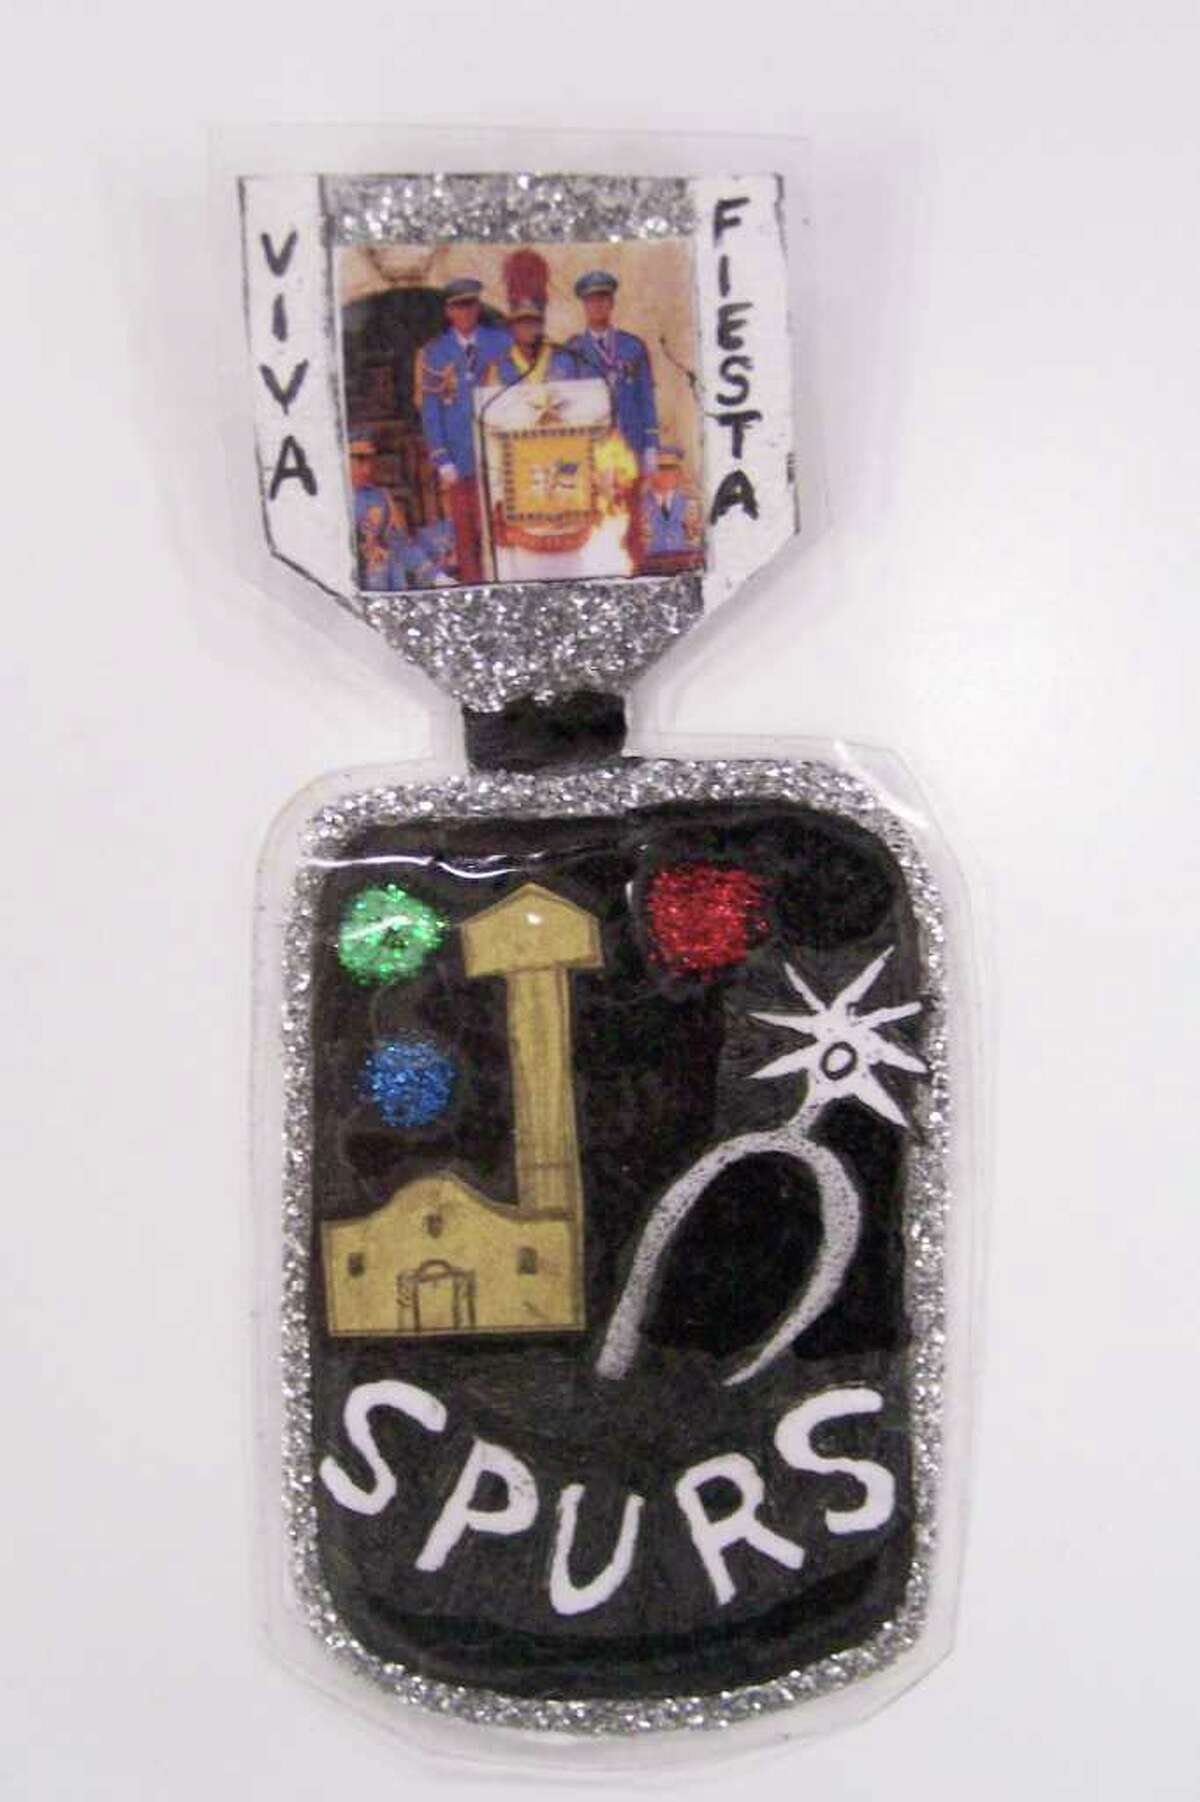 """""""A Great Combo: San Antonio Spurs and Viva Fiesta 2011,"""" by Rudy Sifuentes"""